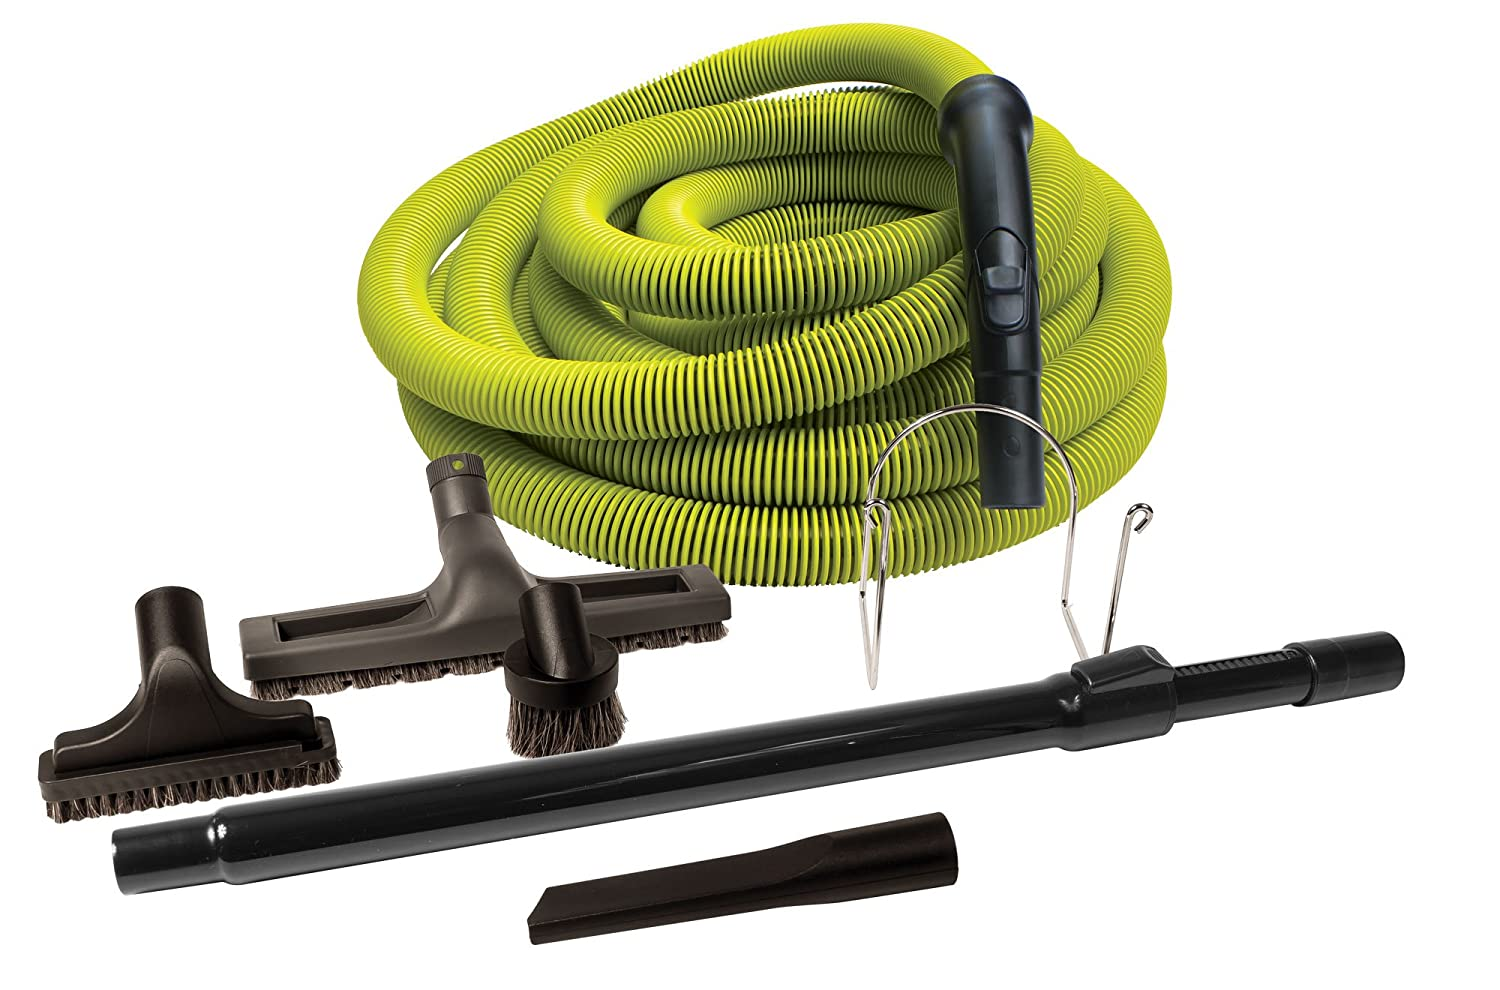 KIT FOR CENTRAL VACUUM HOSE 30' LIME W TOOL AND WAND Johnny Vac